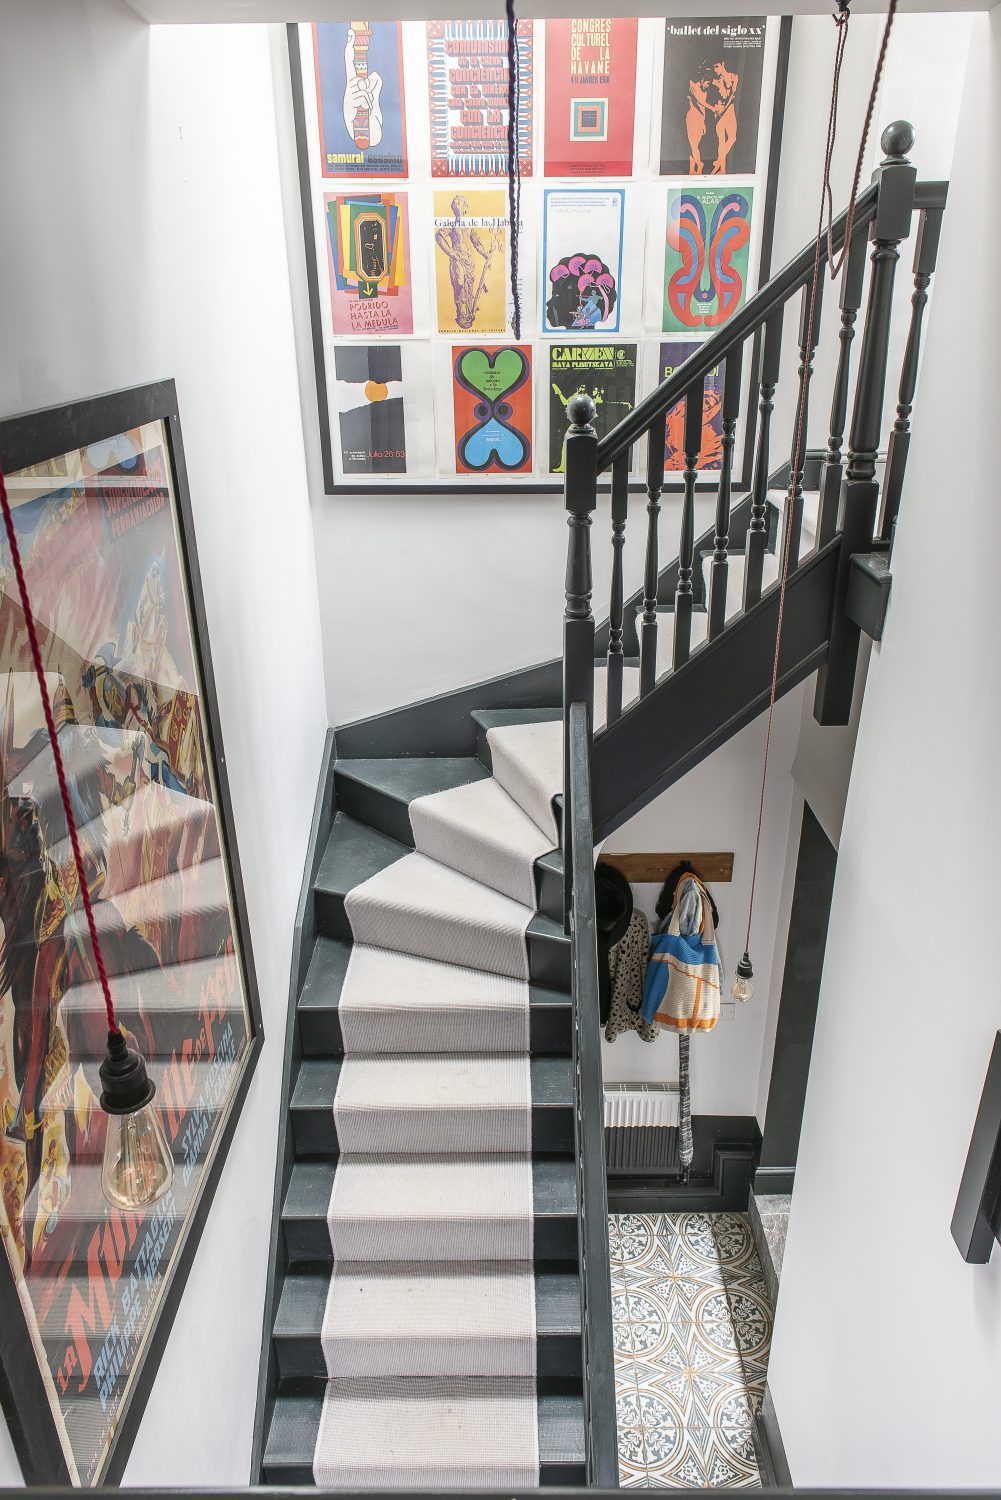 The lofty stairwell opens up to a gallery on the first floor, where more coloured cables from Dyke & Dean are strung across the void. Two extra large frames, one containing an old film poster, the other a collage of Cuban posters from a book, hang on the walls